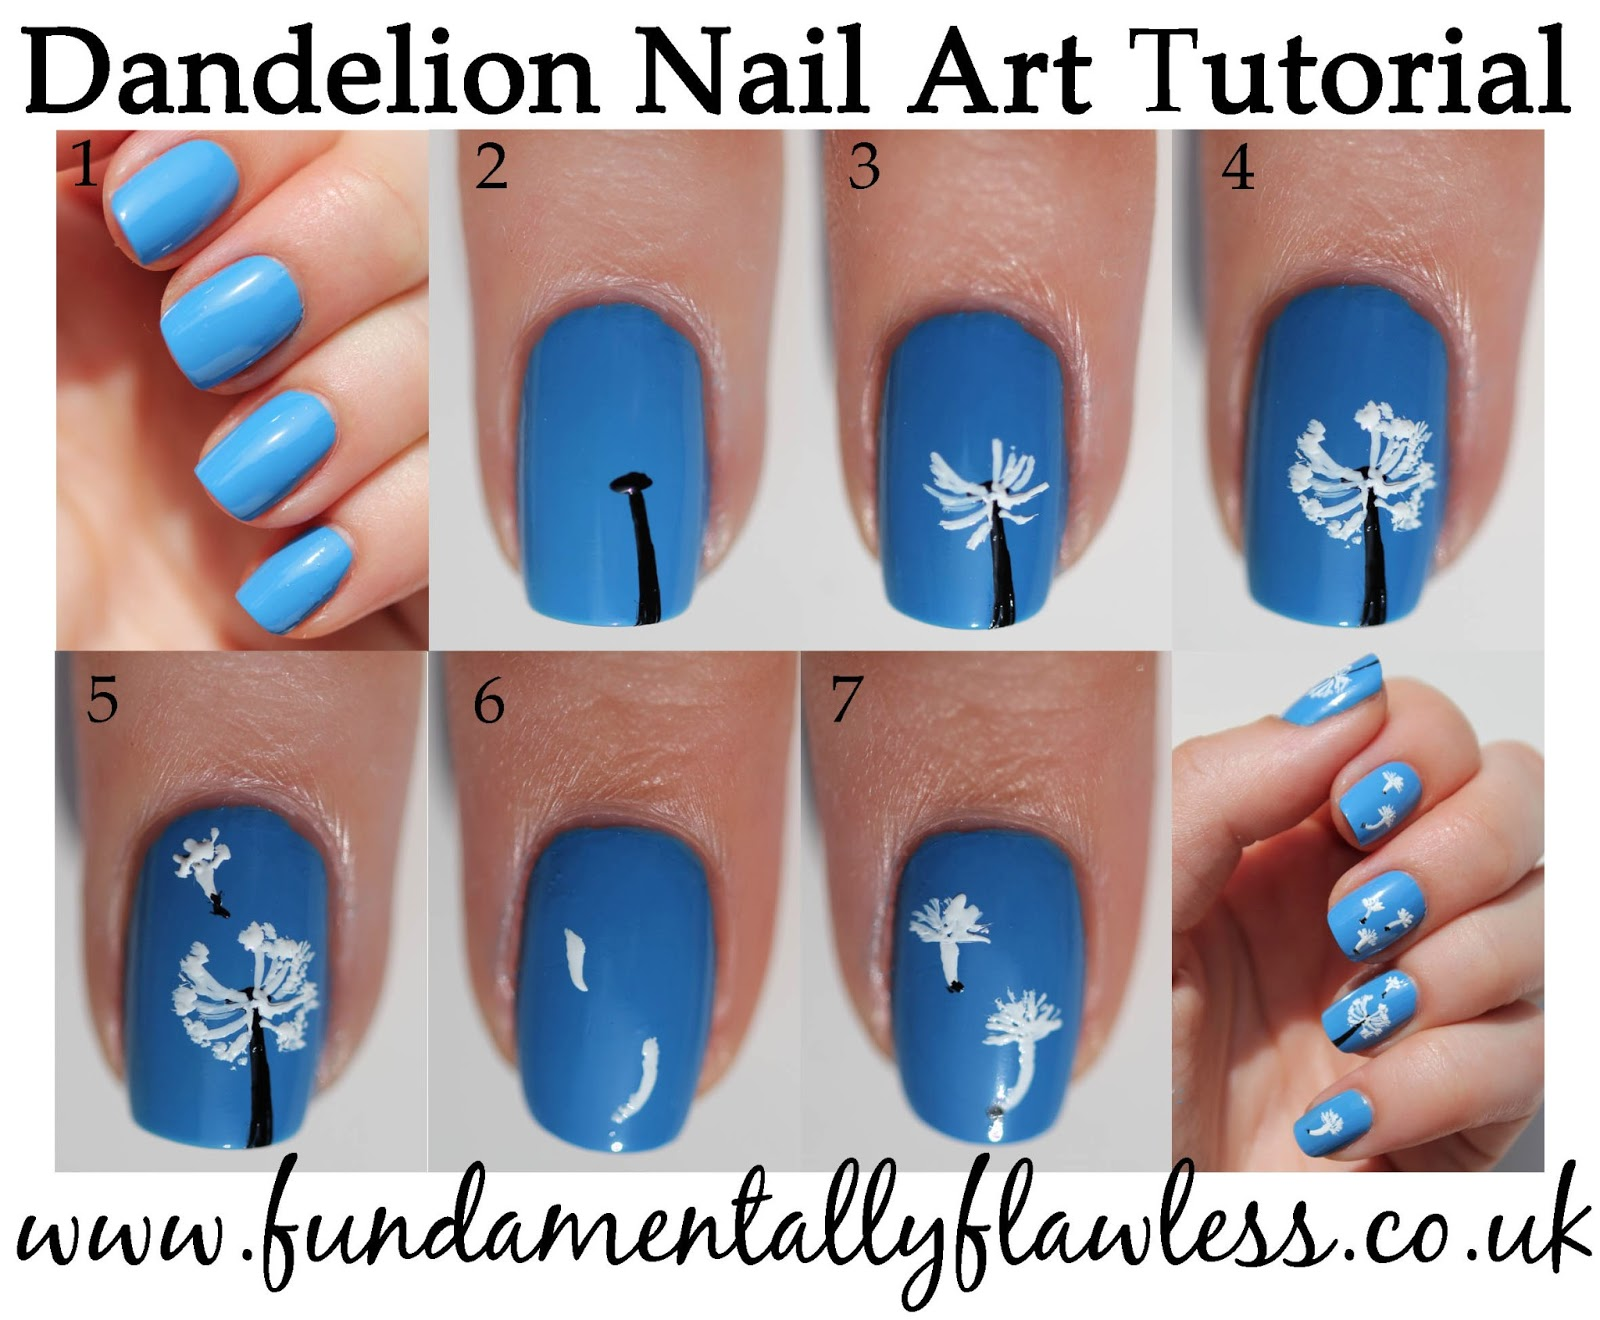 Fundamentally Flawless Manicure Monday Dandelion Nail Art Tutorial